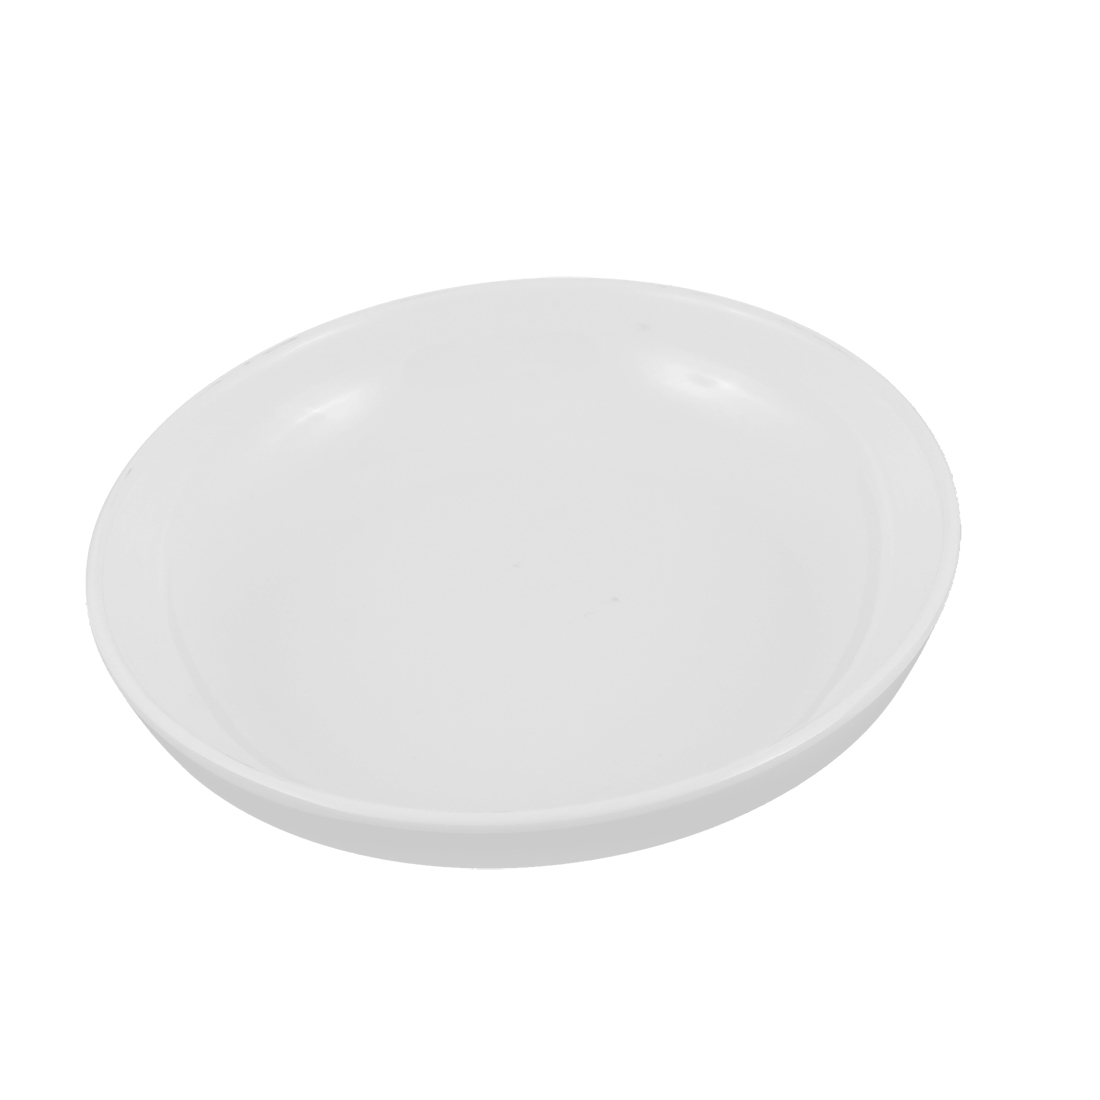 "Kitchen Round Shape Dessert Dinner Dish Plate White 6"" Dia"